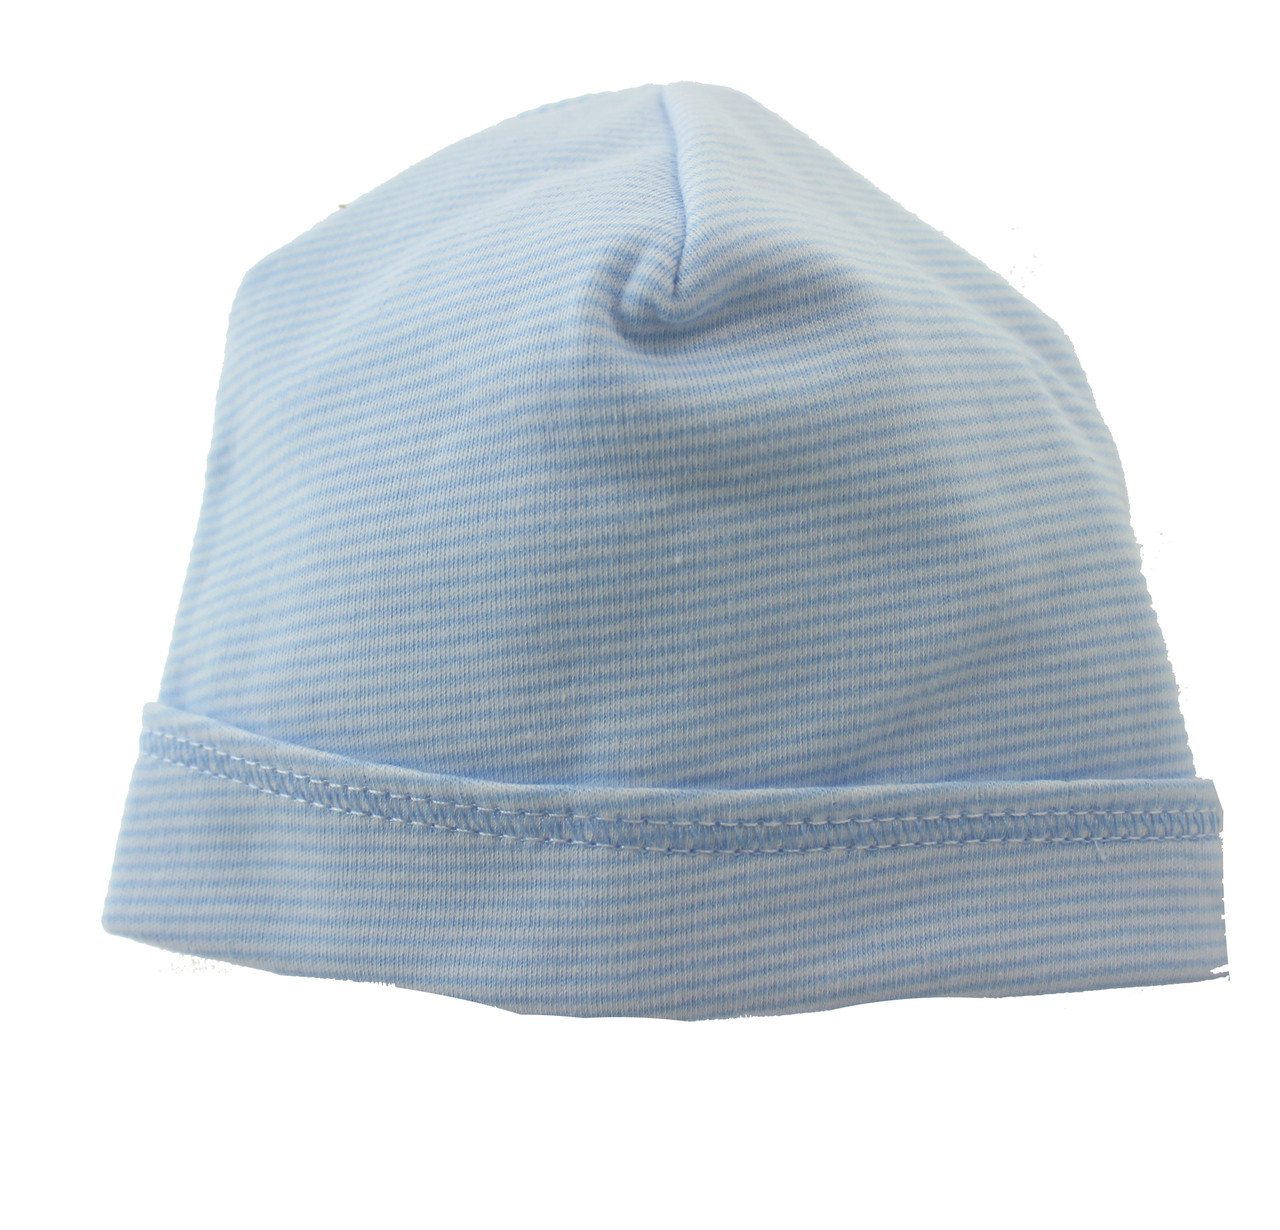 ... Personalized Newborn Boys Hat. Loading zoom 054c06c8798